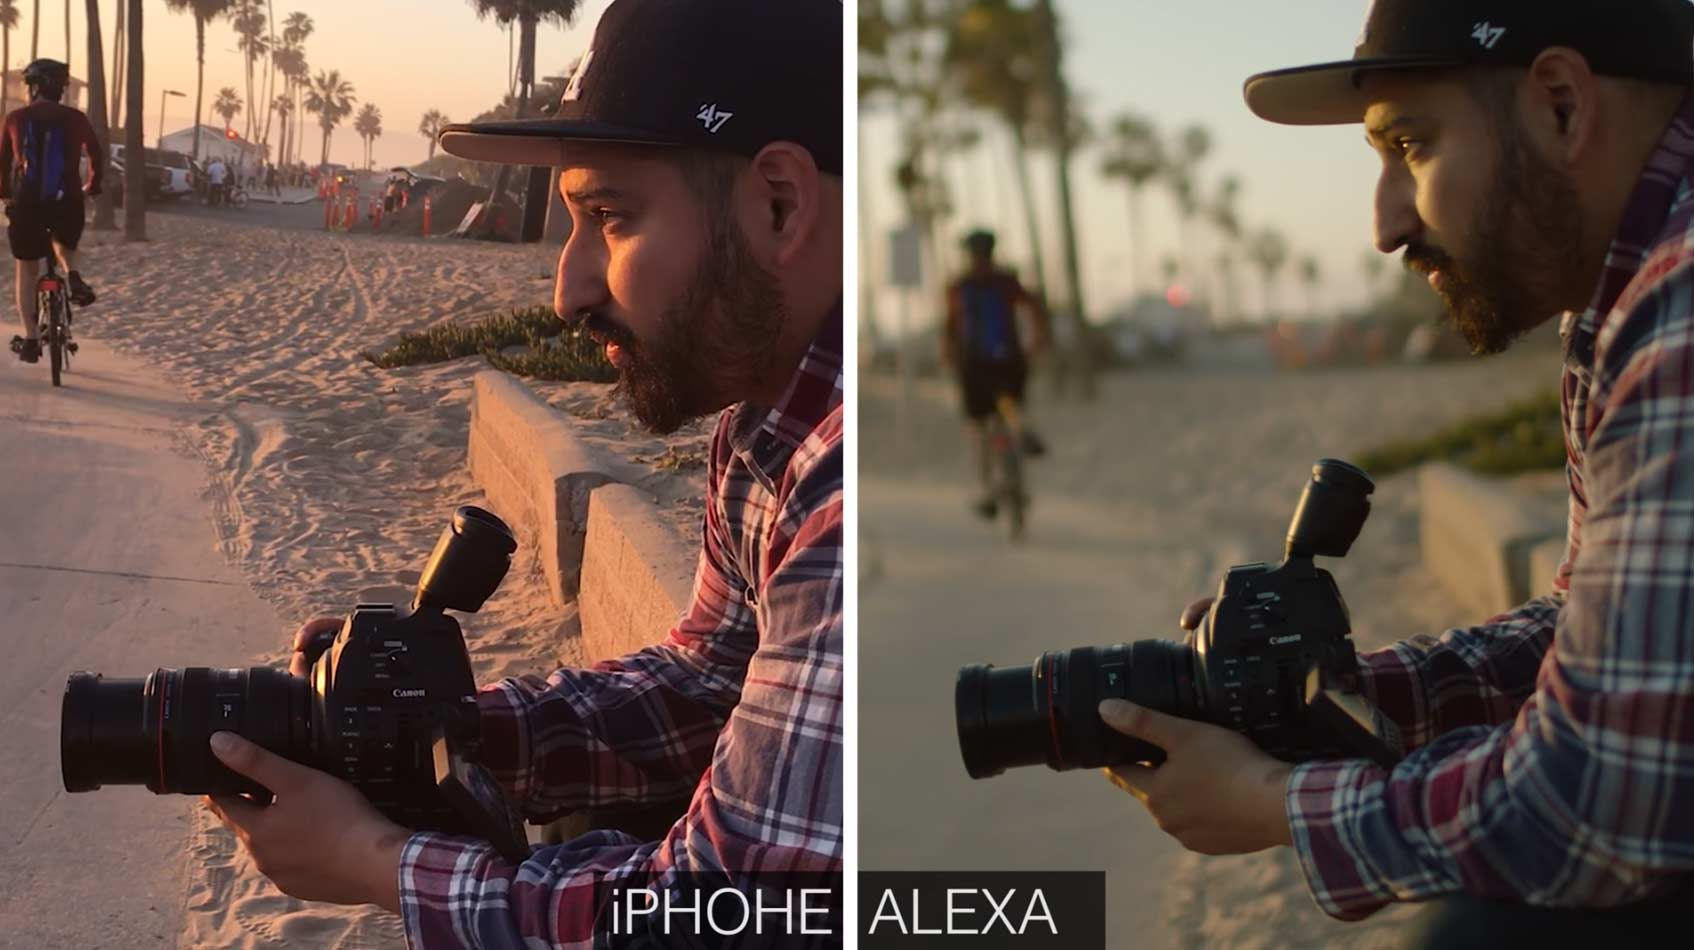 iPhone 7 vs. Hollywood-Filmkamera iphone-7-arri-alexa-vergleich